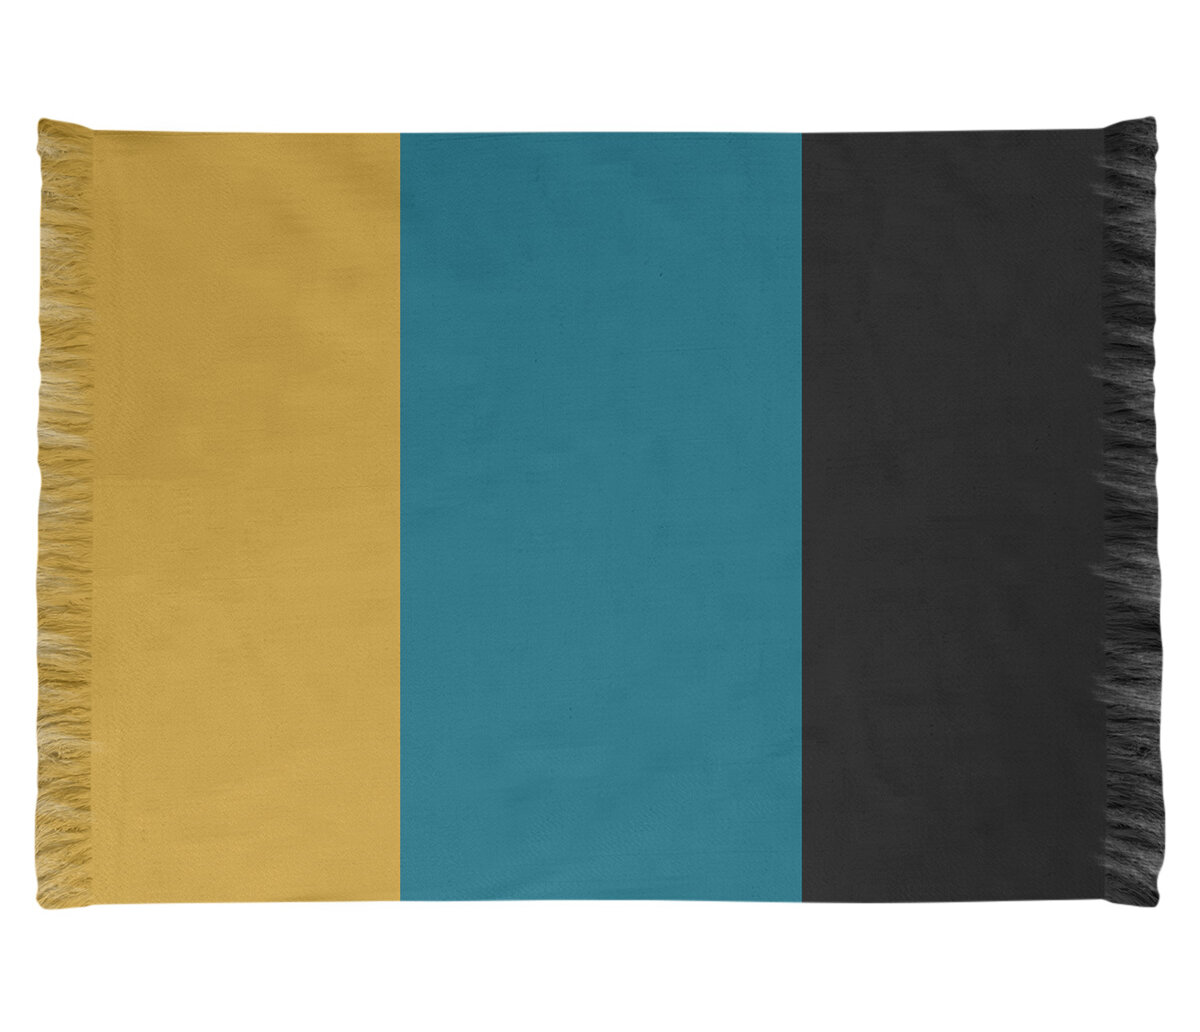 East Urban Home Jacksonville Throwback Football Yellow Black Blue Area Rug Wayfair